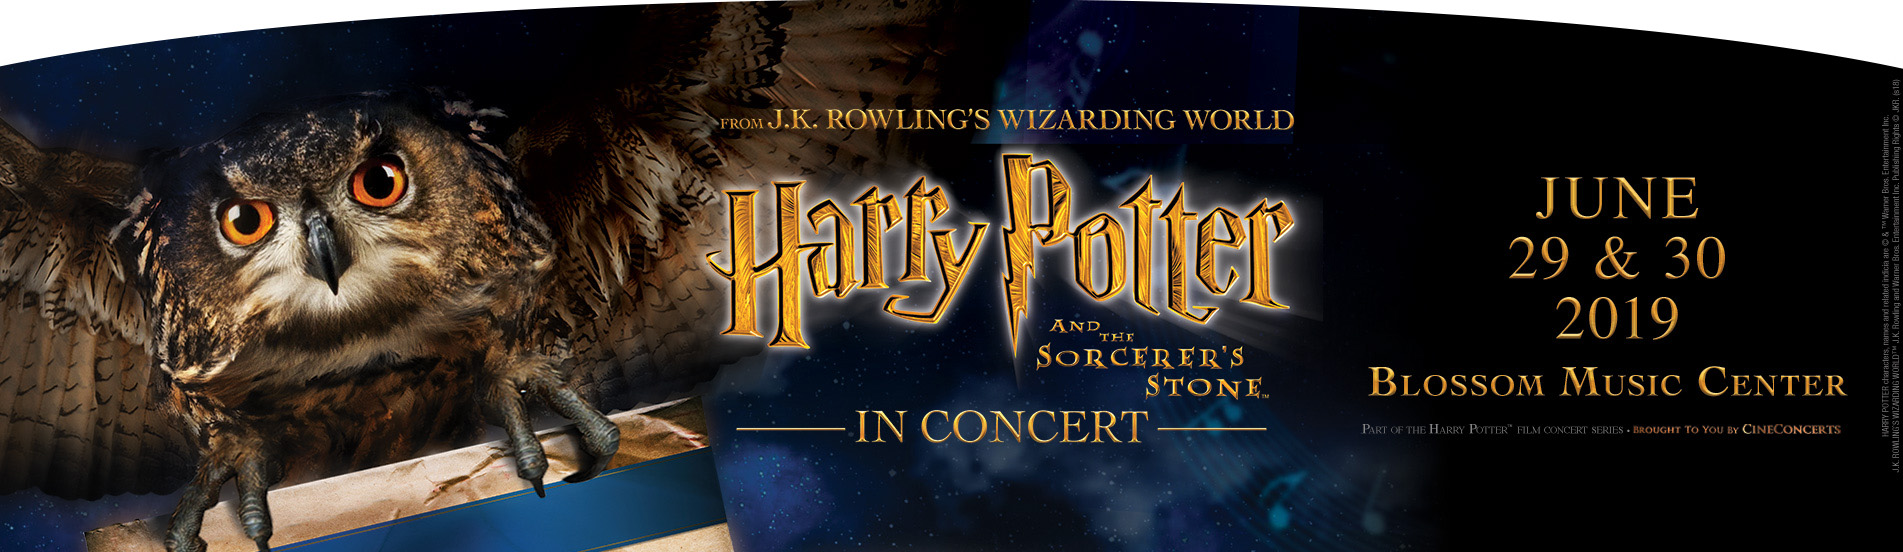 The Cleveland Orchestra: Justin Freer - Harry Potter and The Sorcerer's Stone - Film With Live Orchestra at Blossom Music Center